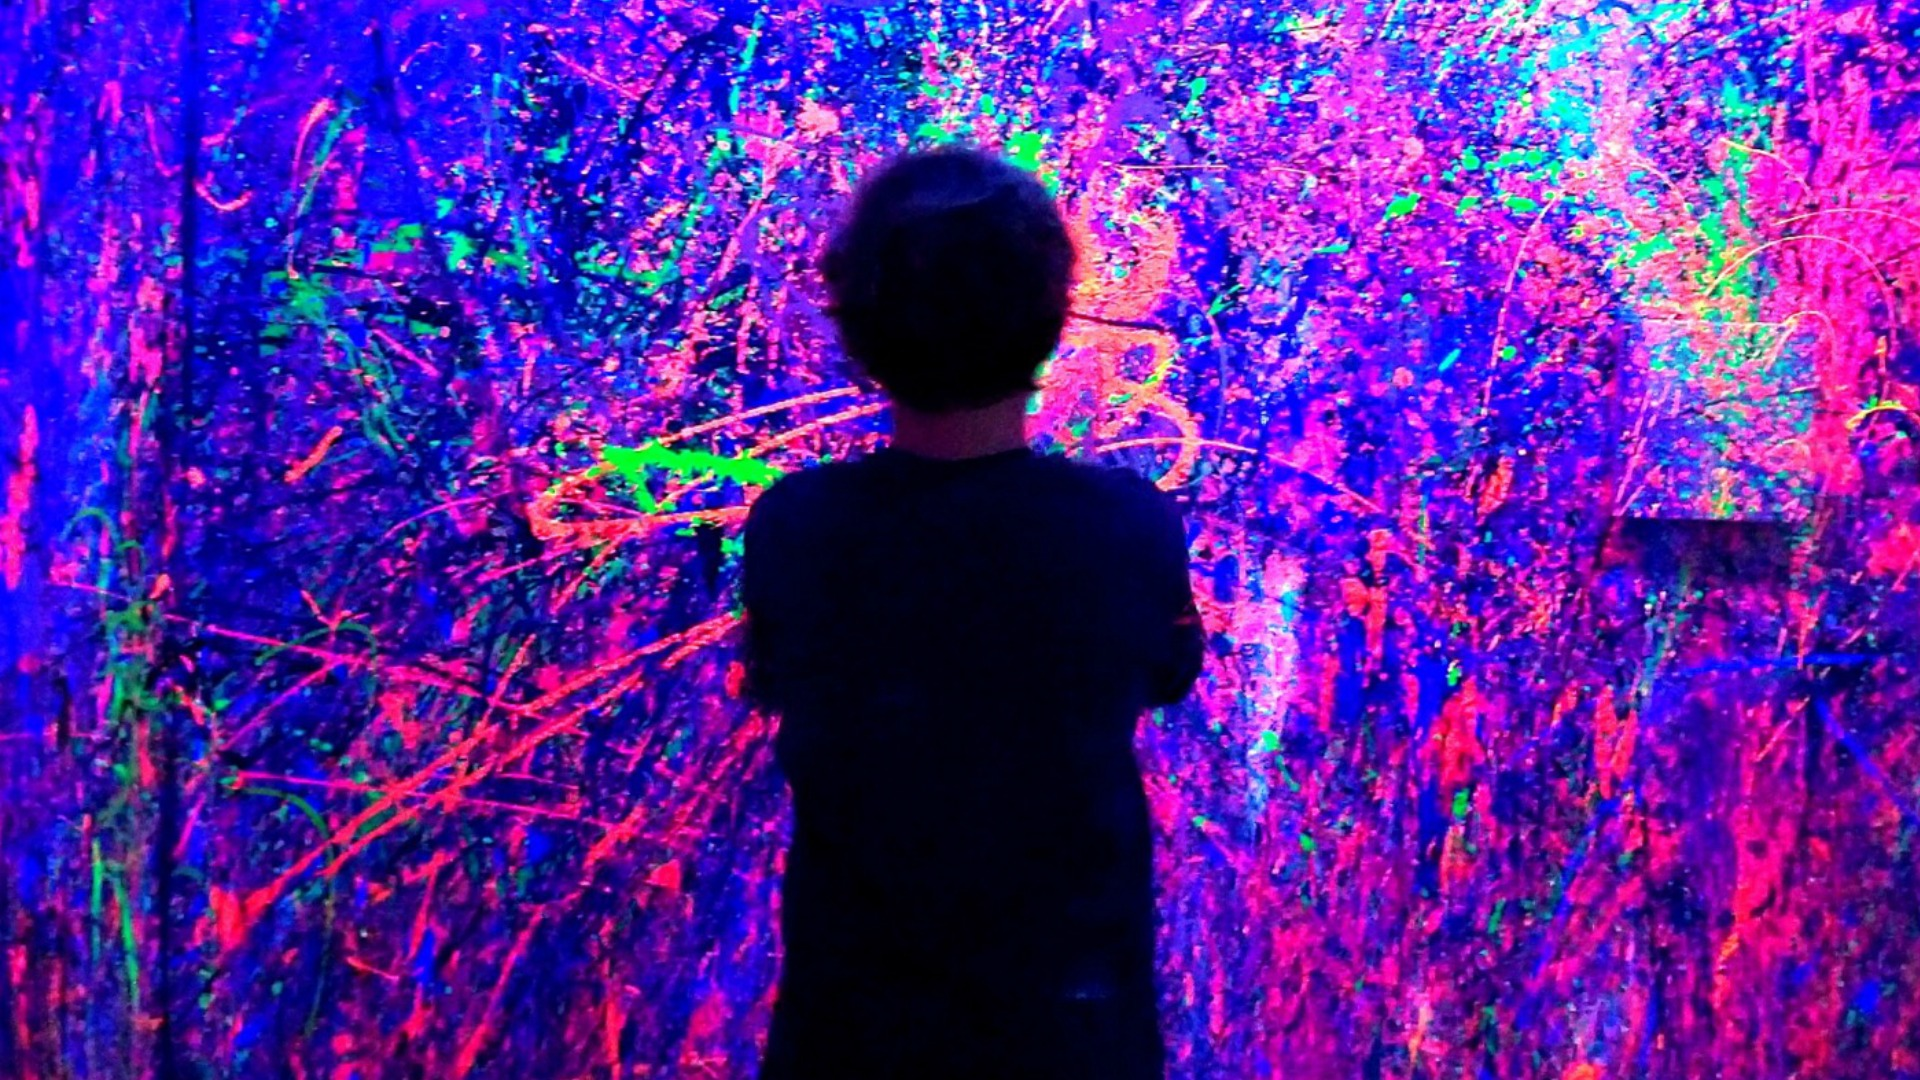 Smudge Studios has tons of fun art-themed parties from splatter paint to clay to tape art to upcycled records and more. // The Ultimate List of Kid-Friendly Party Venues in Austin - Over 50 birthday party venues in Austin for babies, toddlers, and preschoolers sorted by location and price. Plus an interactive map to find your closest-to-home options. #austintexas #atx #austintx